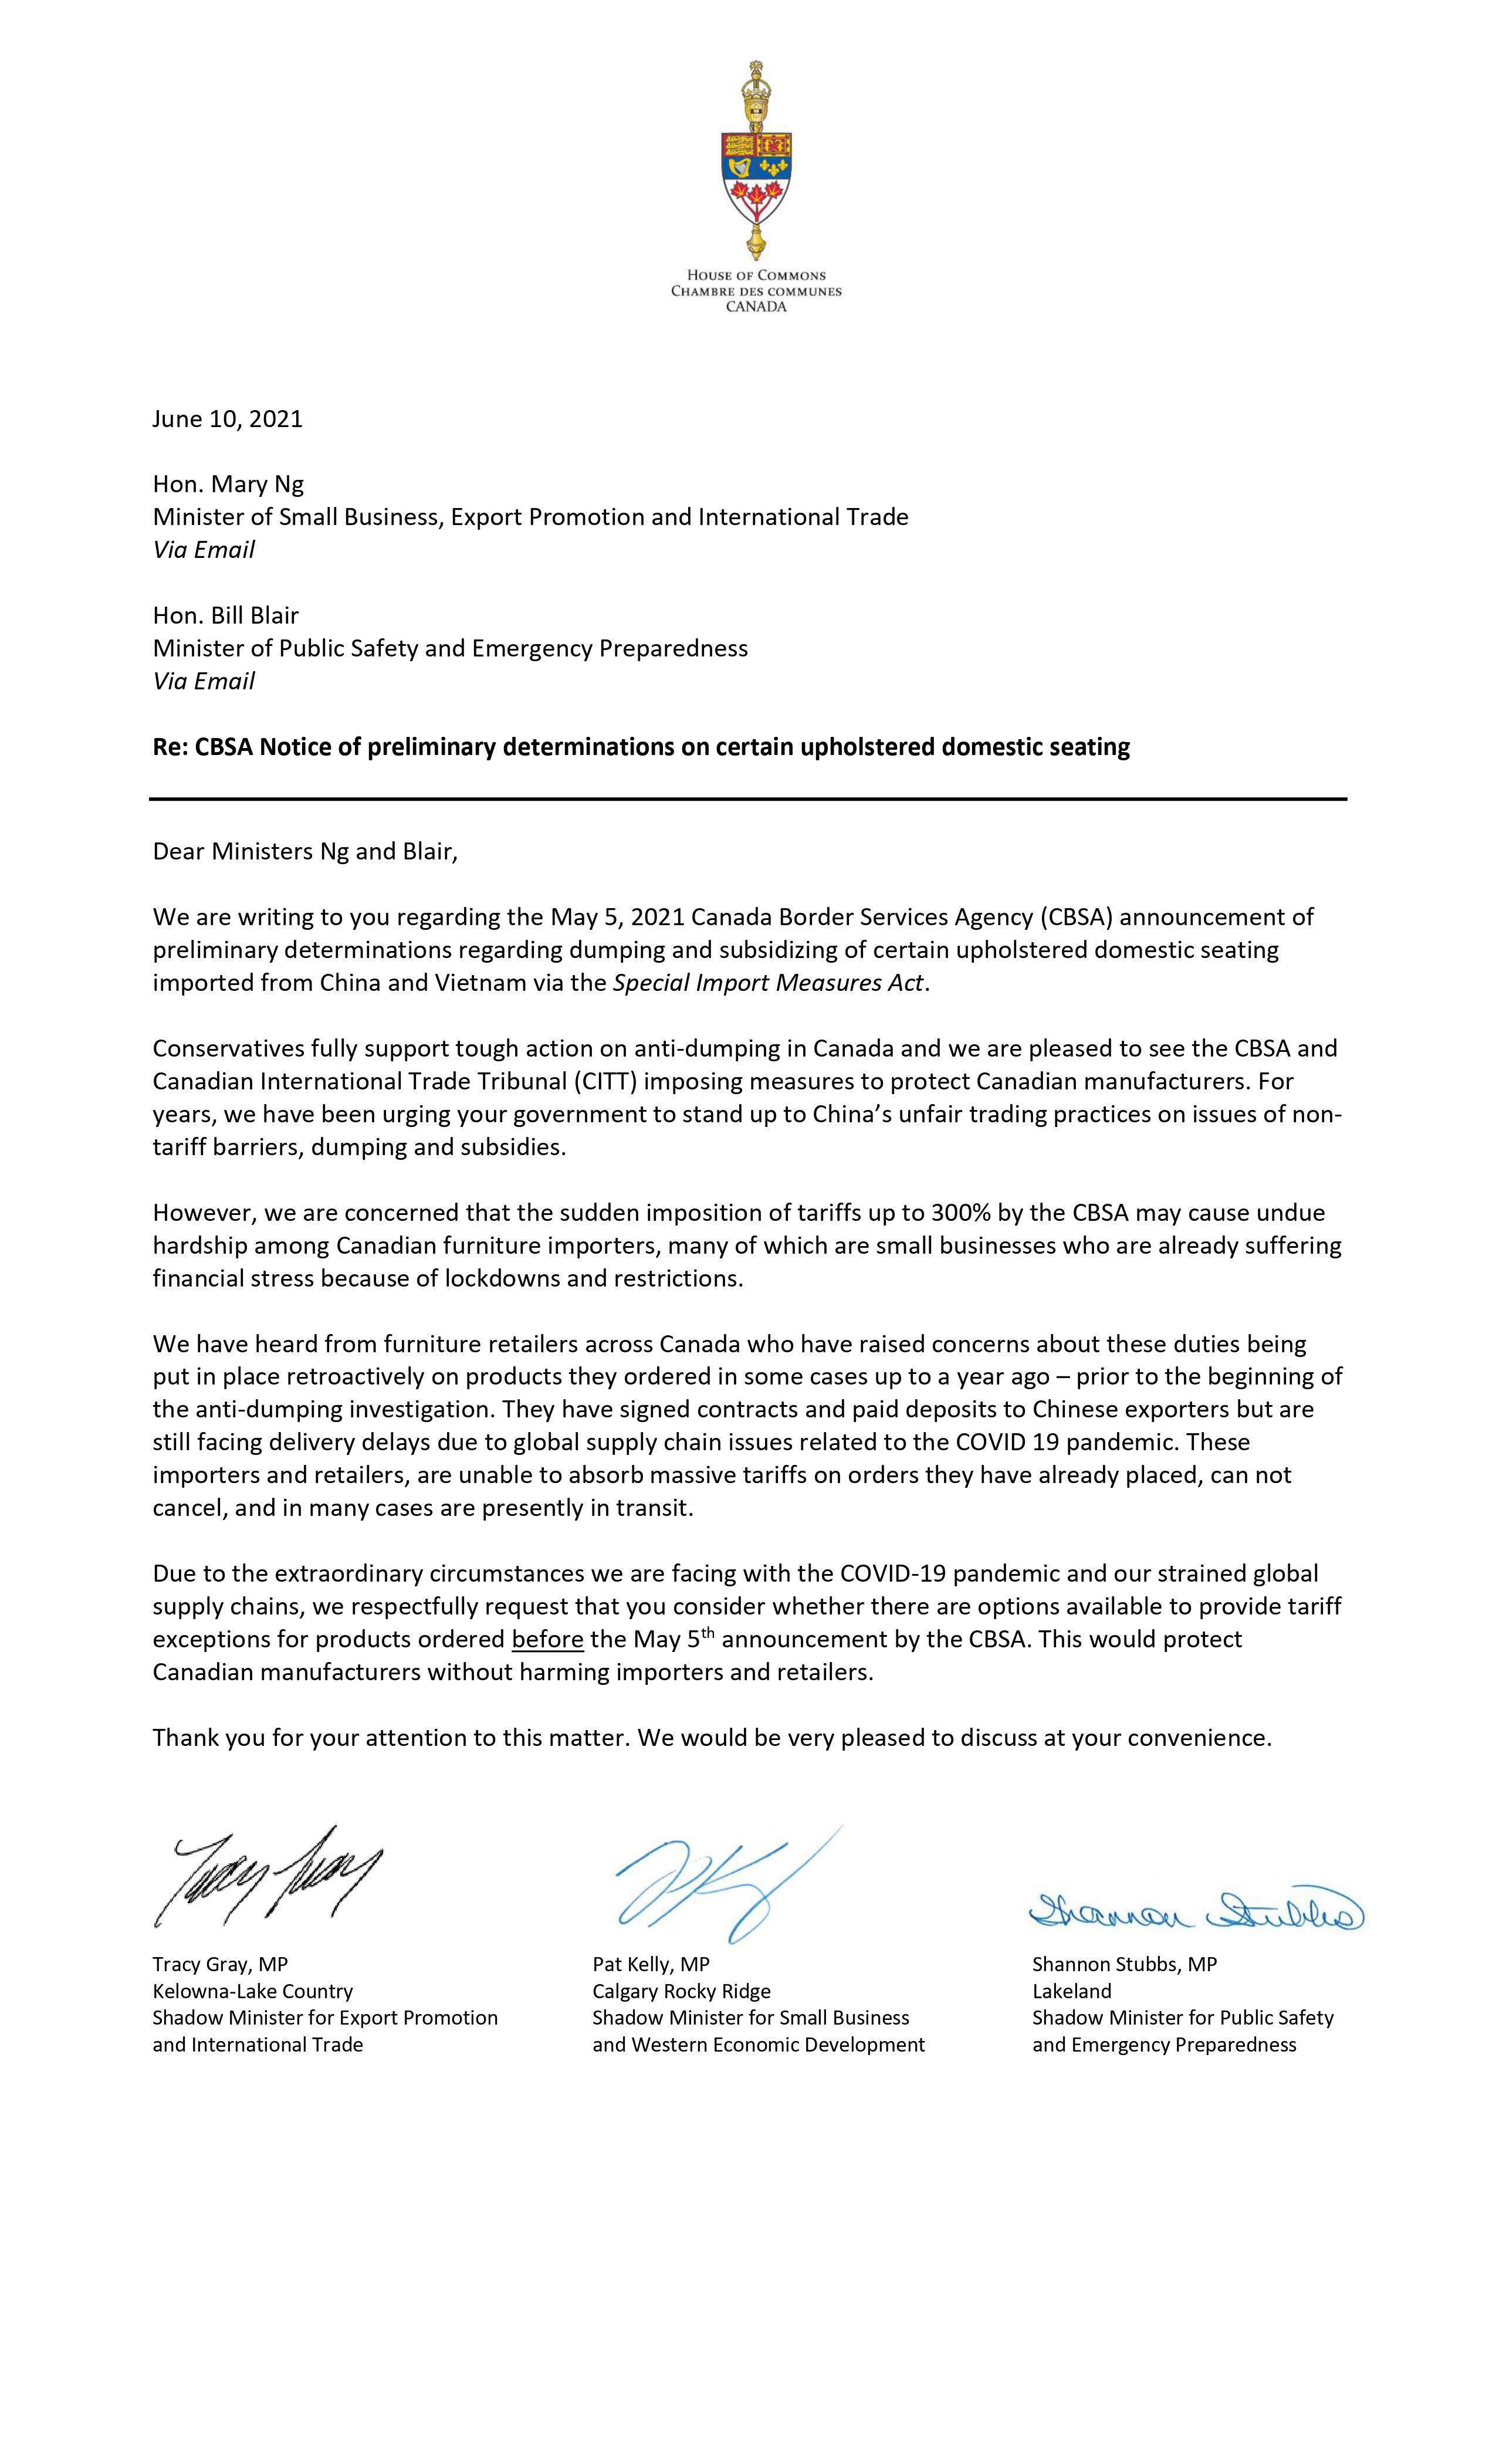 GRAY_KELLY_STUBBS_Anti_Dumping_Letter_to_Ministers_FINAL.jpg